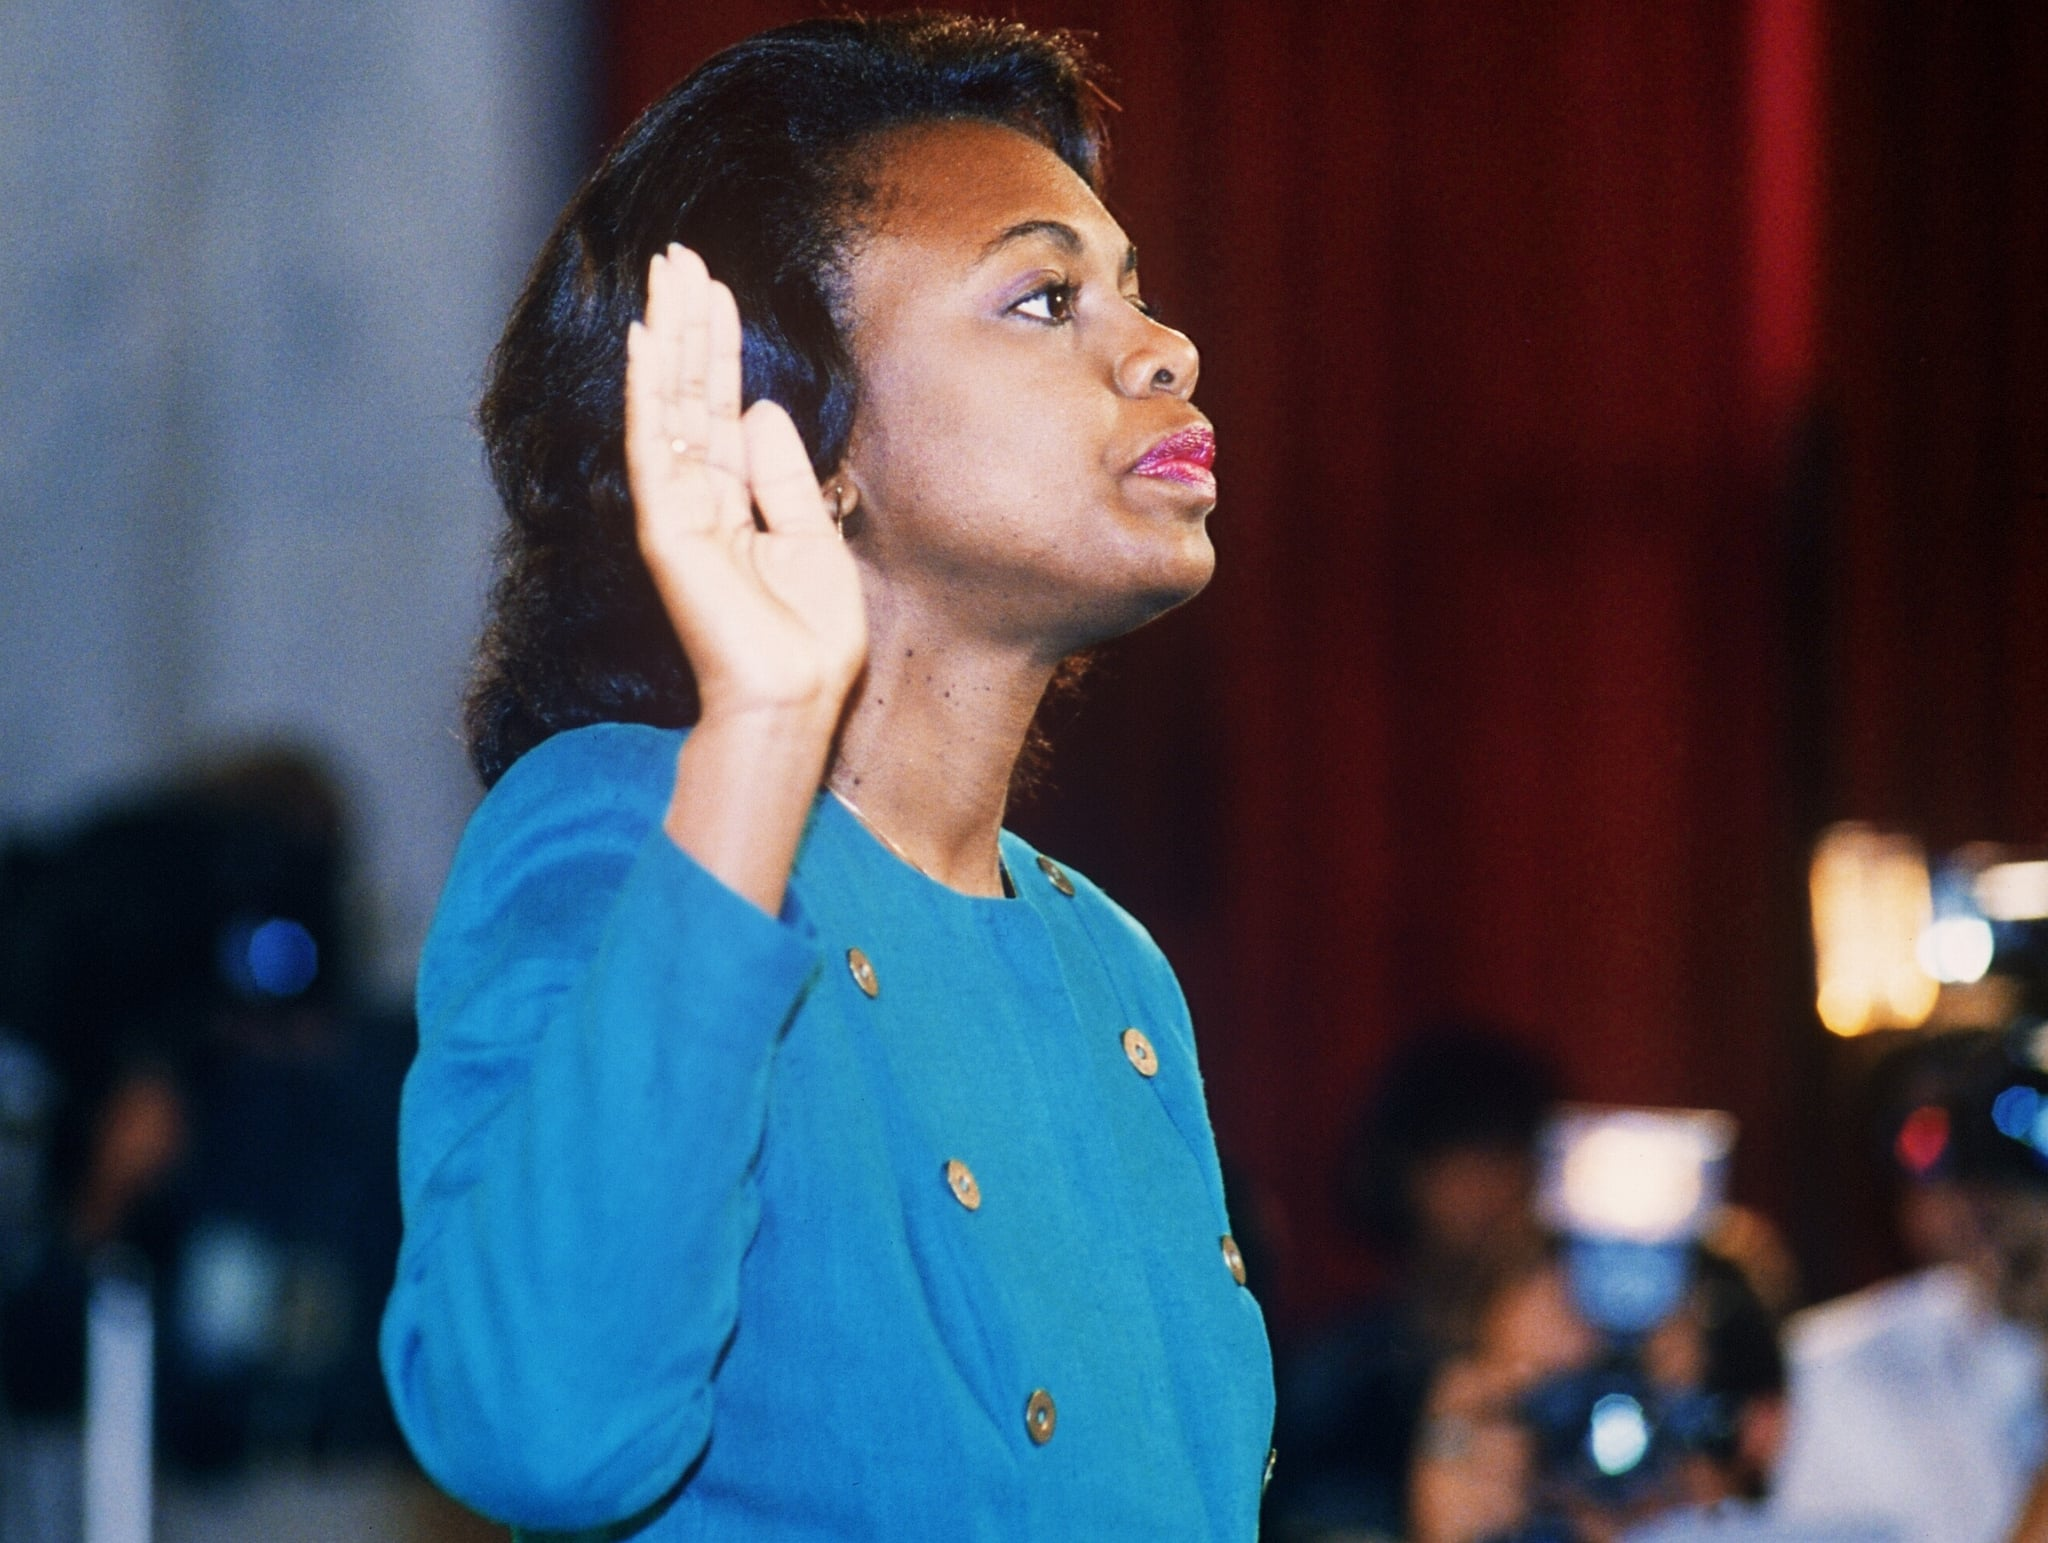 WASHINGTON, DC - OCTOBER 12:  US law professor Anita Hill takes oath, 12 October 1991, before the Senate Judiciary Committee in Washington D.C.. Hill filed sexual harassment charges against US Supreme Court nominee Clarence Thomas.  (Photo credit should read JENNIFER LAW/AFP/Getty Images)